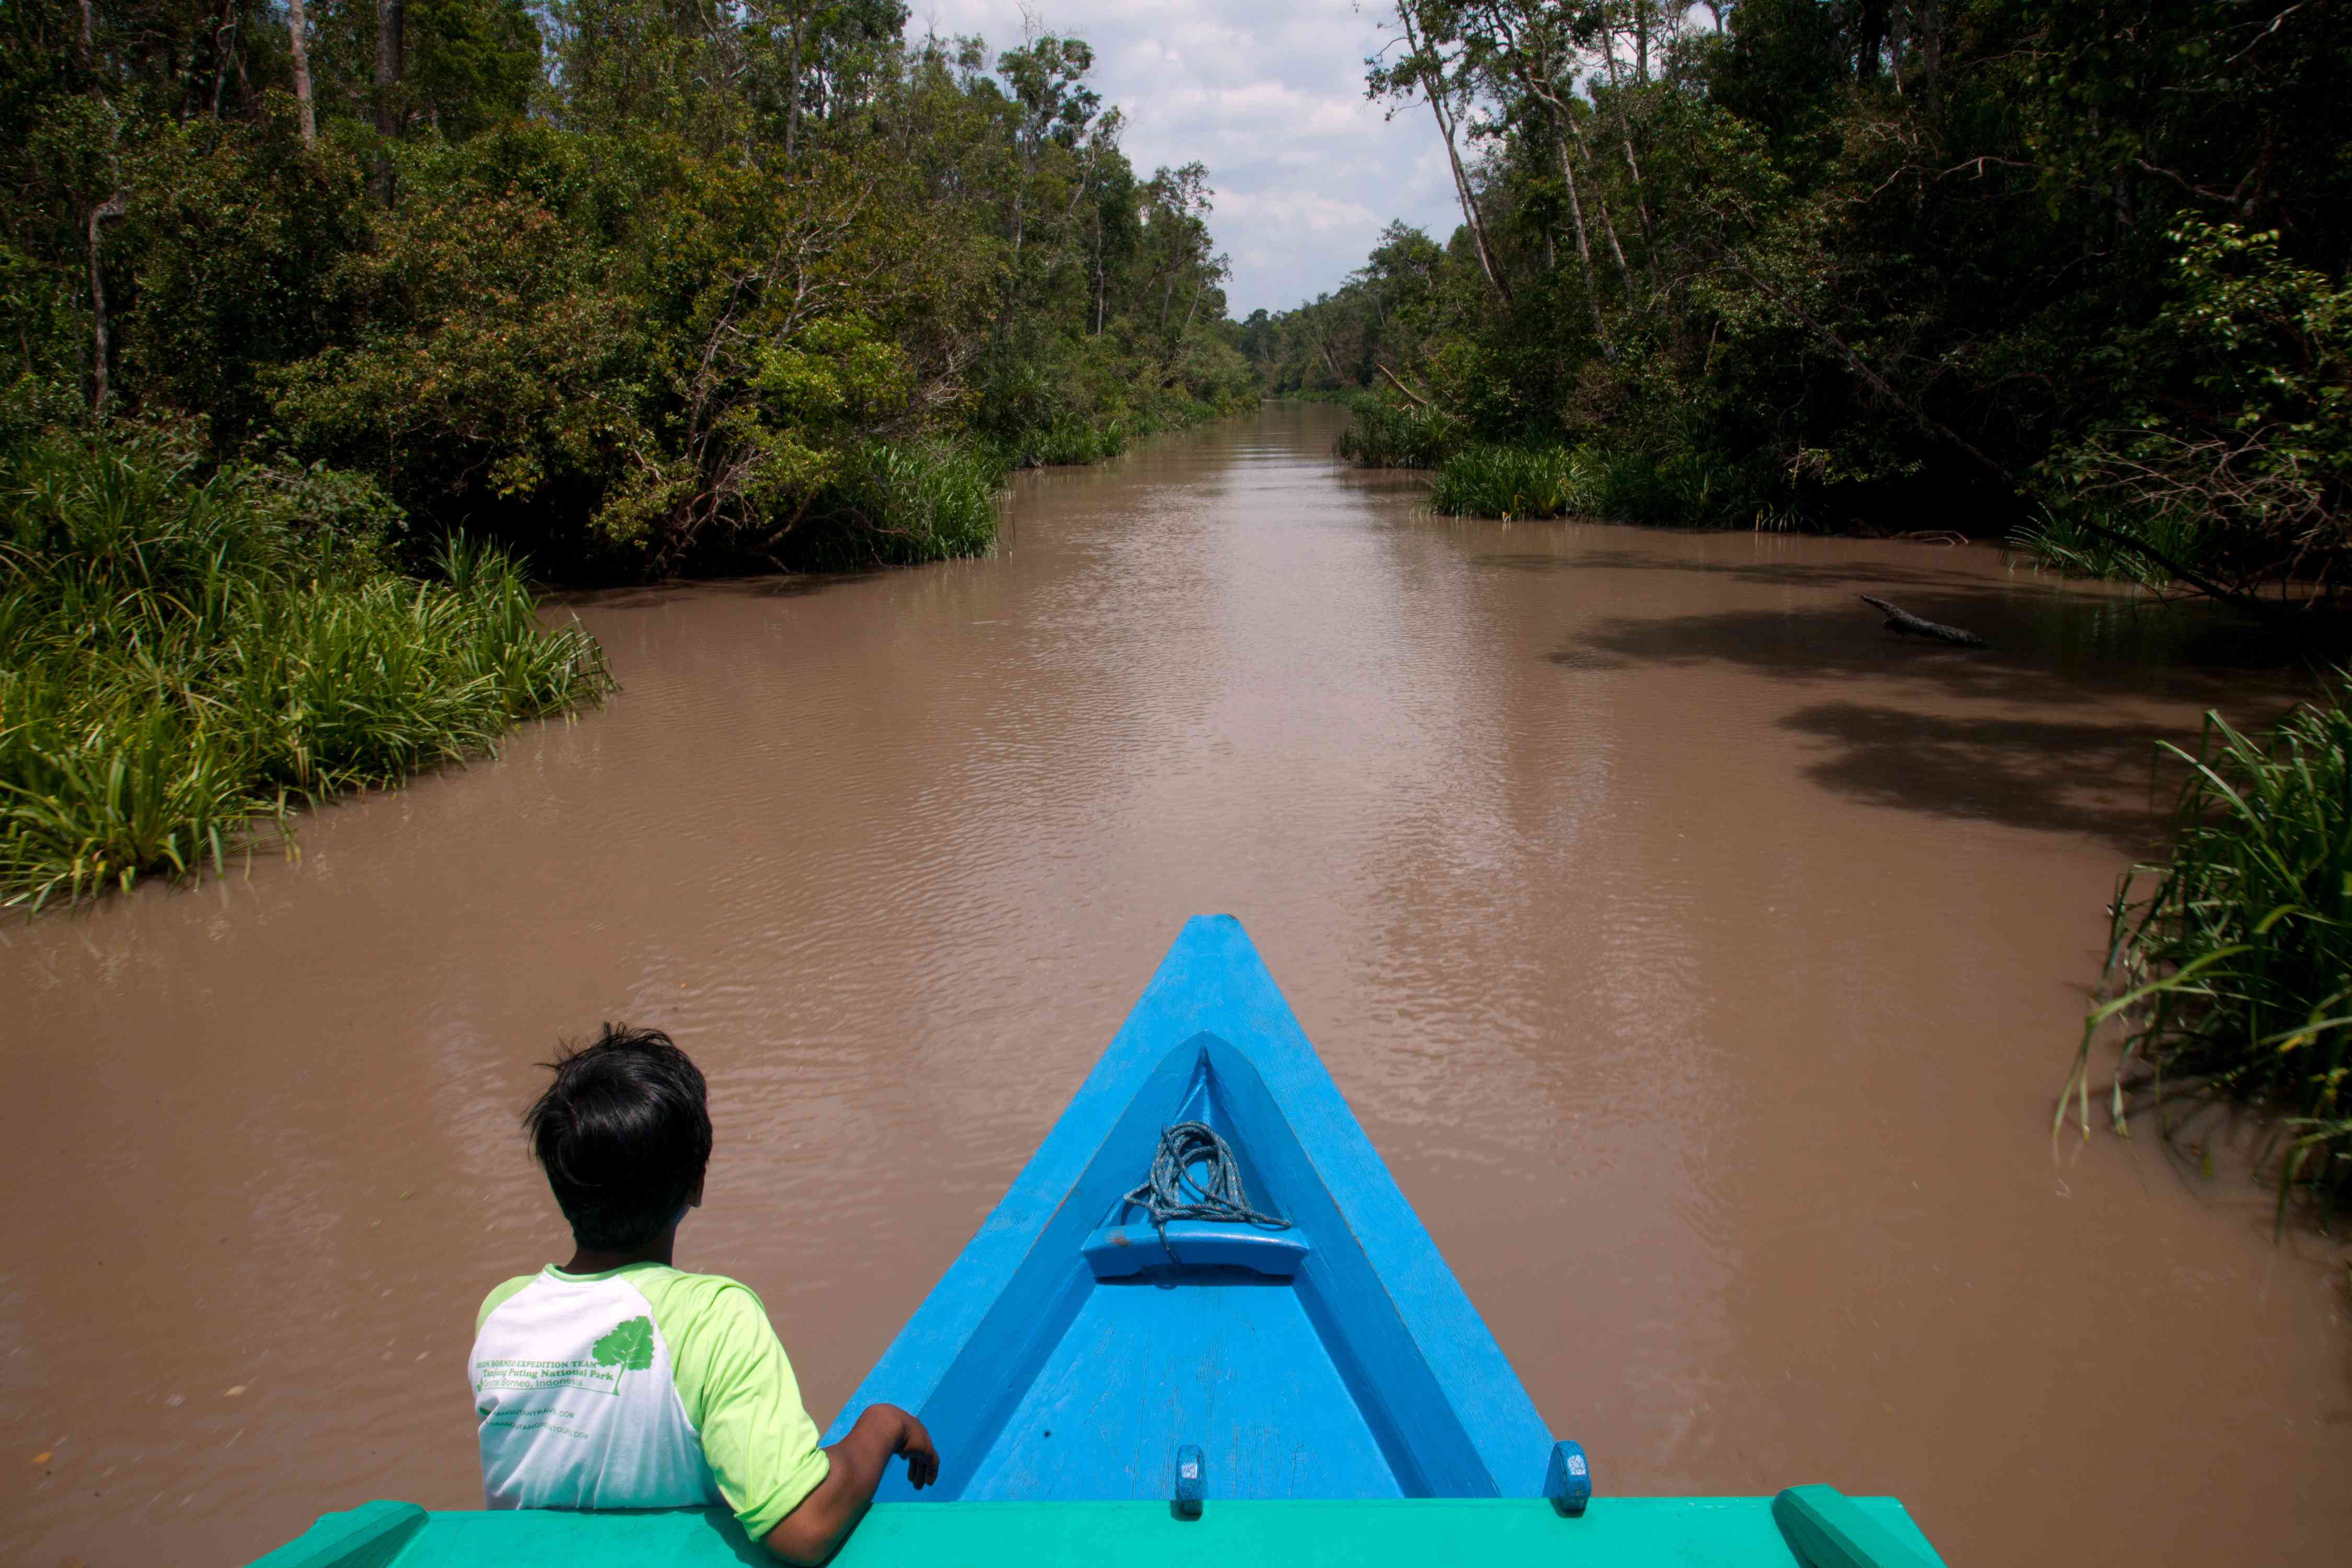 A boat and guide on a muddy river in Tanjung Puting, Kalimantan